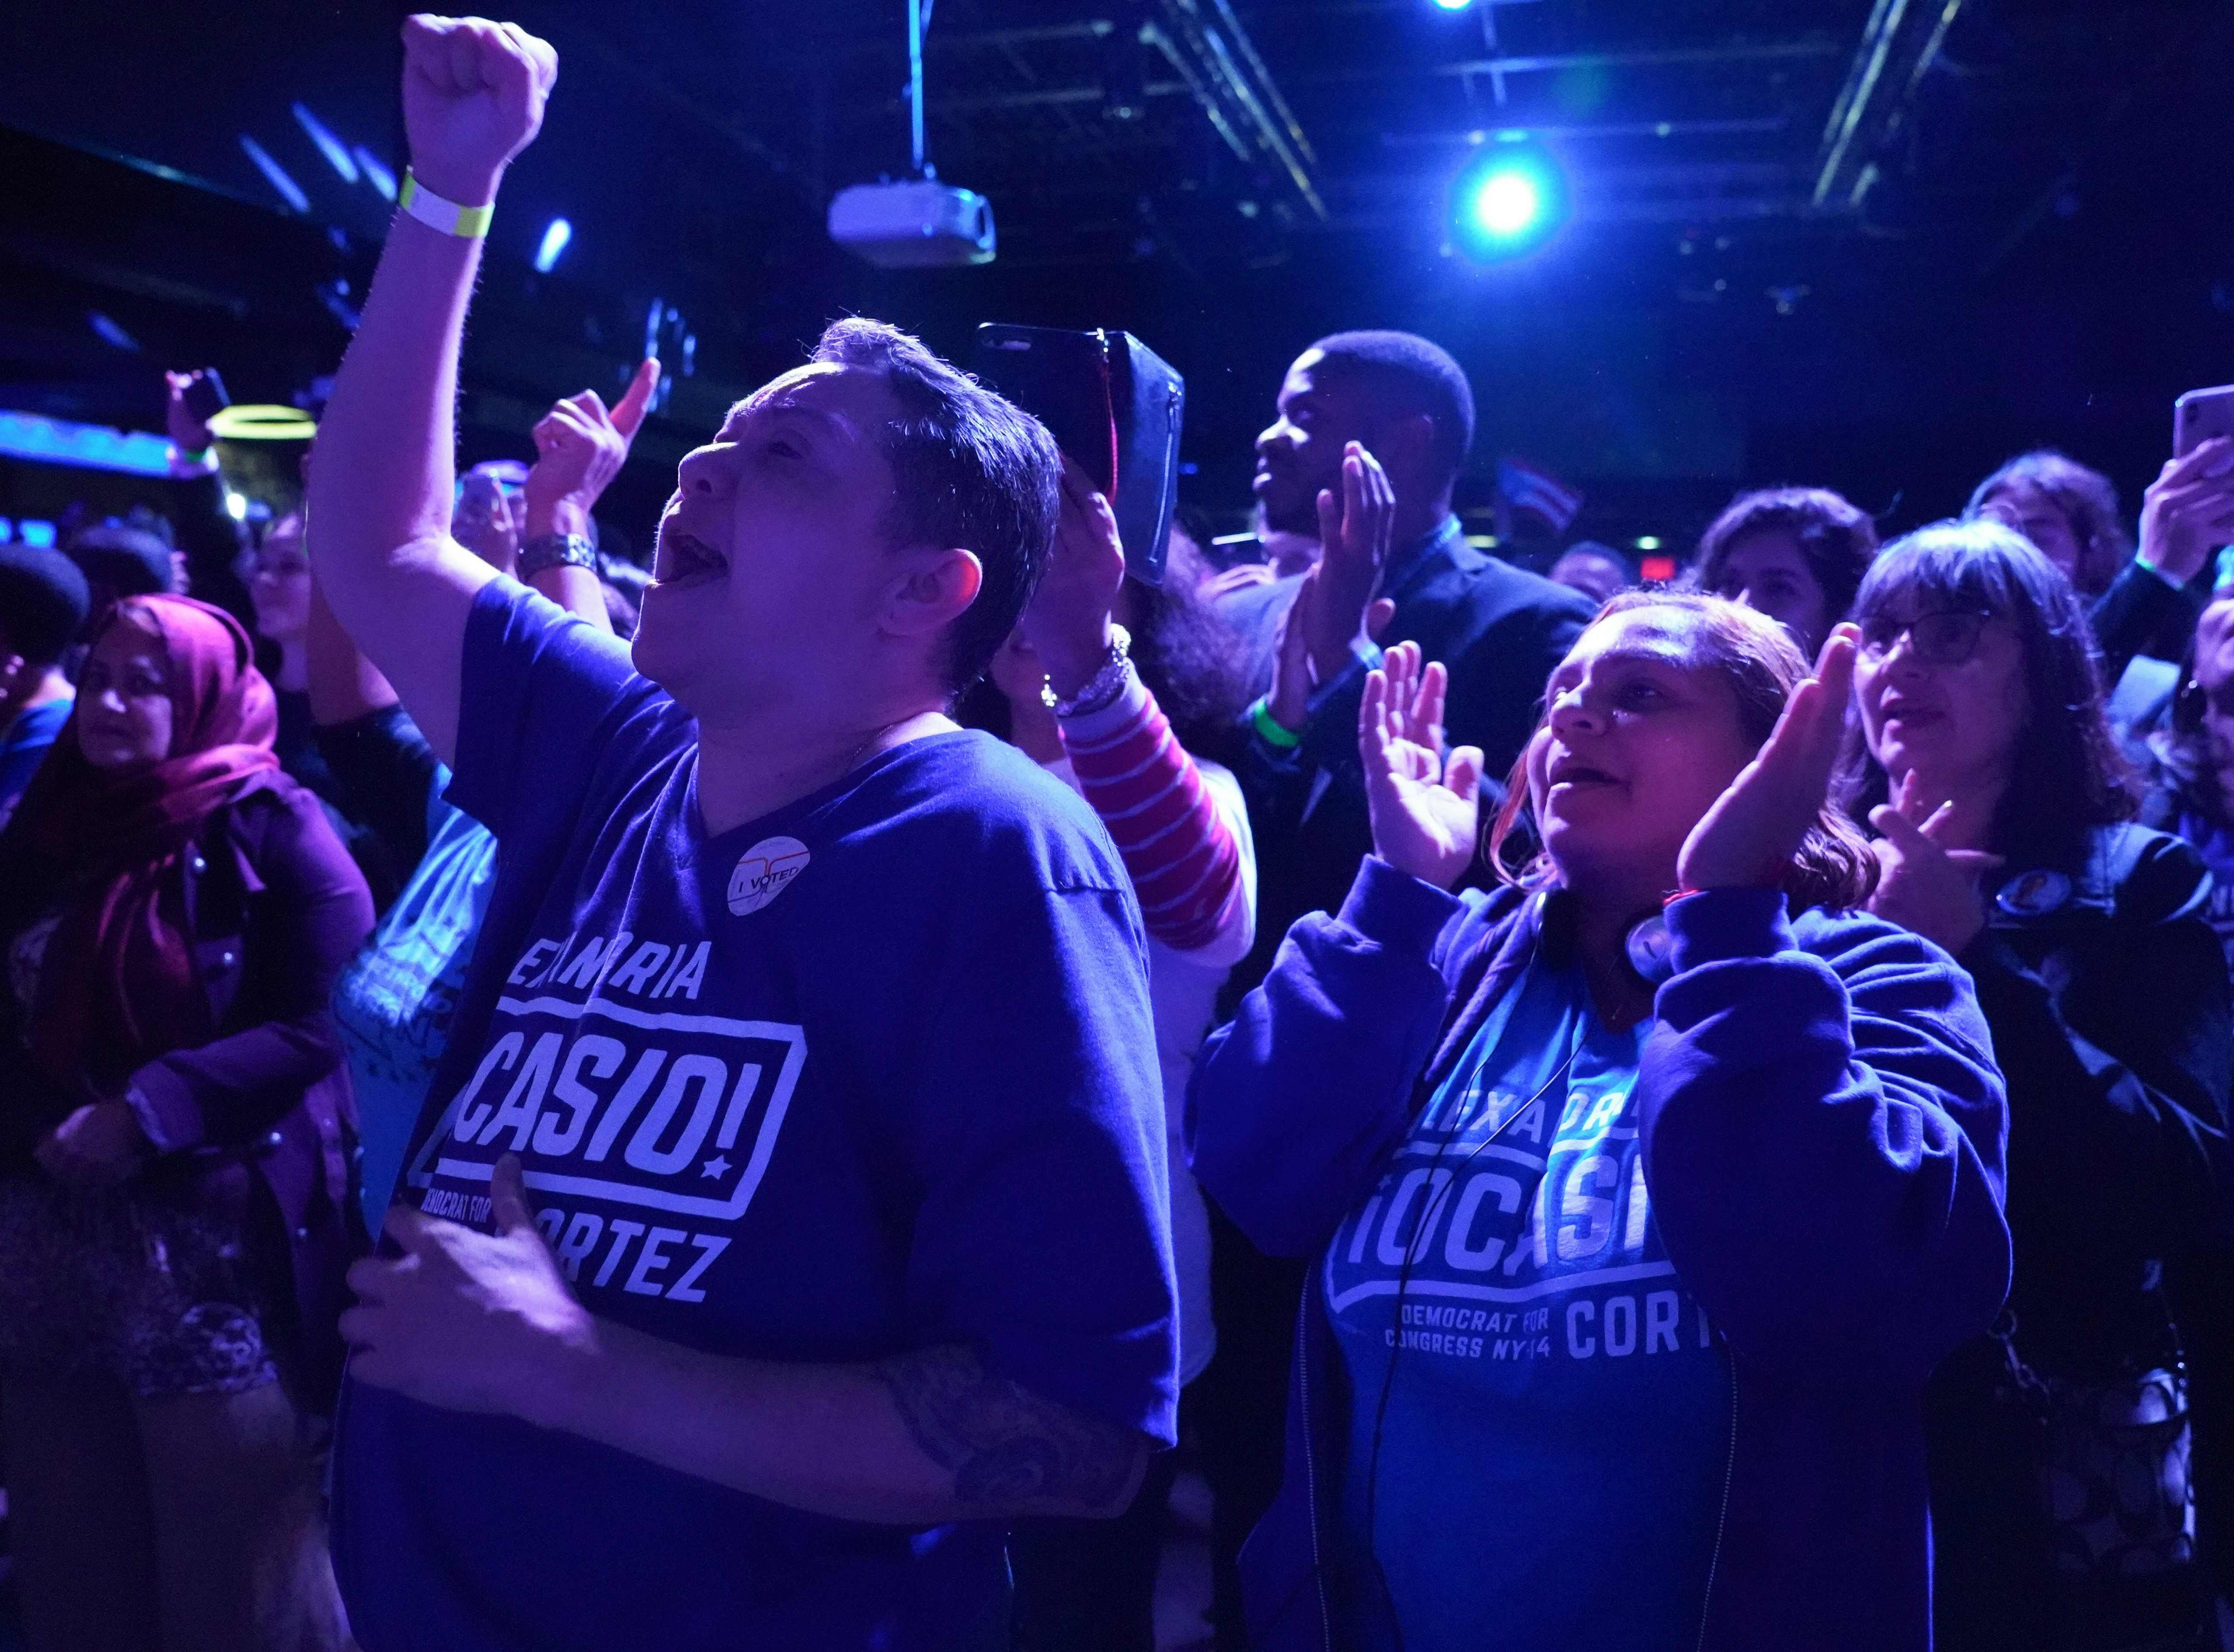 Supporters of Alexandria Ocasio-Cortez cheer while she speaks onstage during her election night party in the Queens Borough of New York on Nov. 6, 2018.